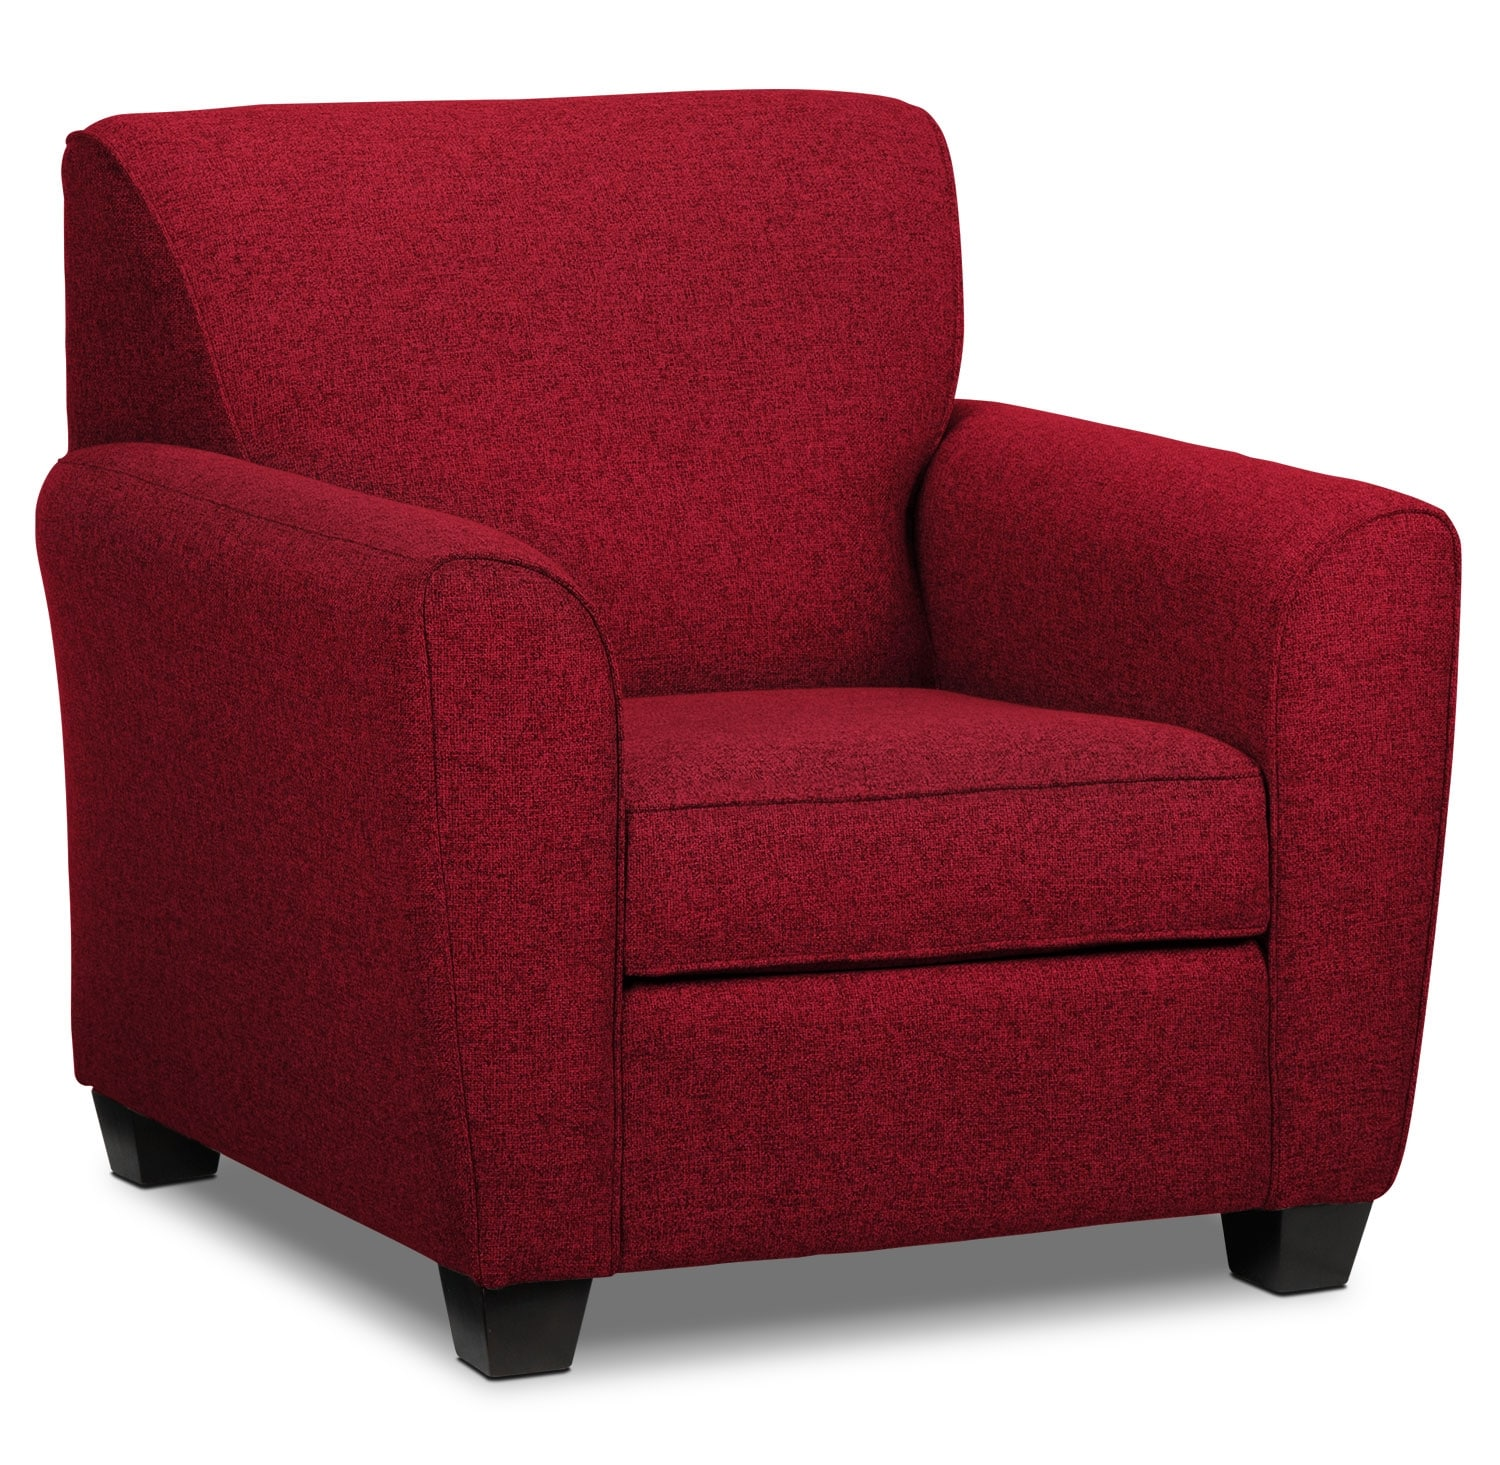 Ashby chair red leon 39 s for Chair chair chair